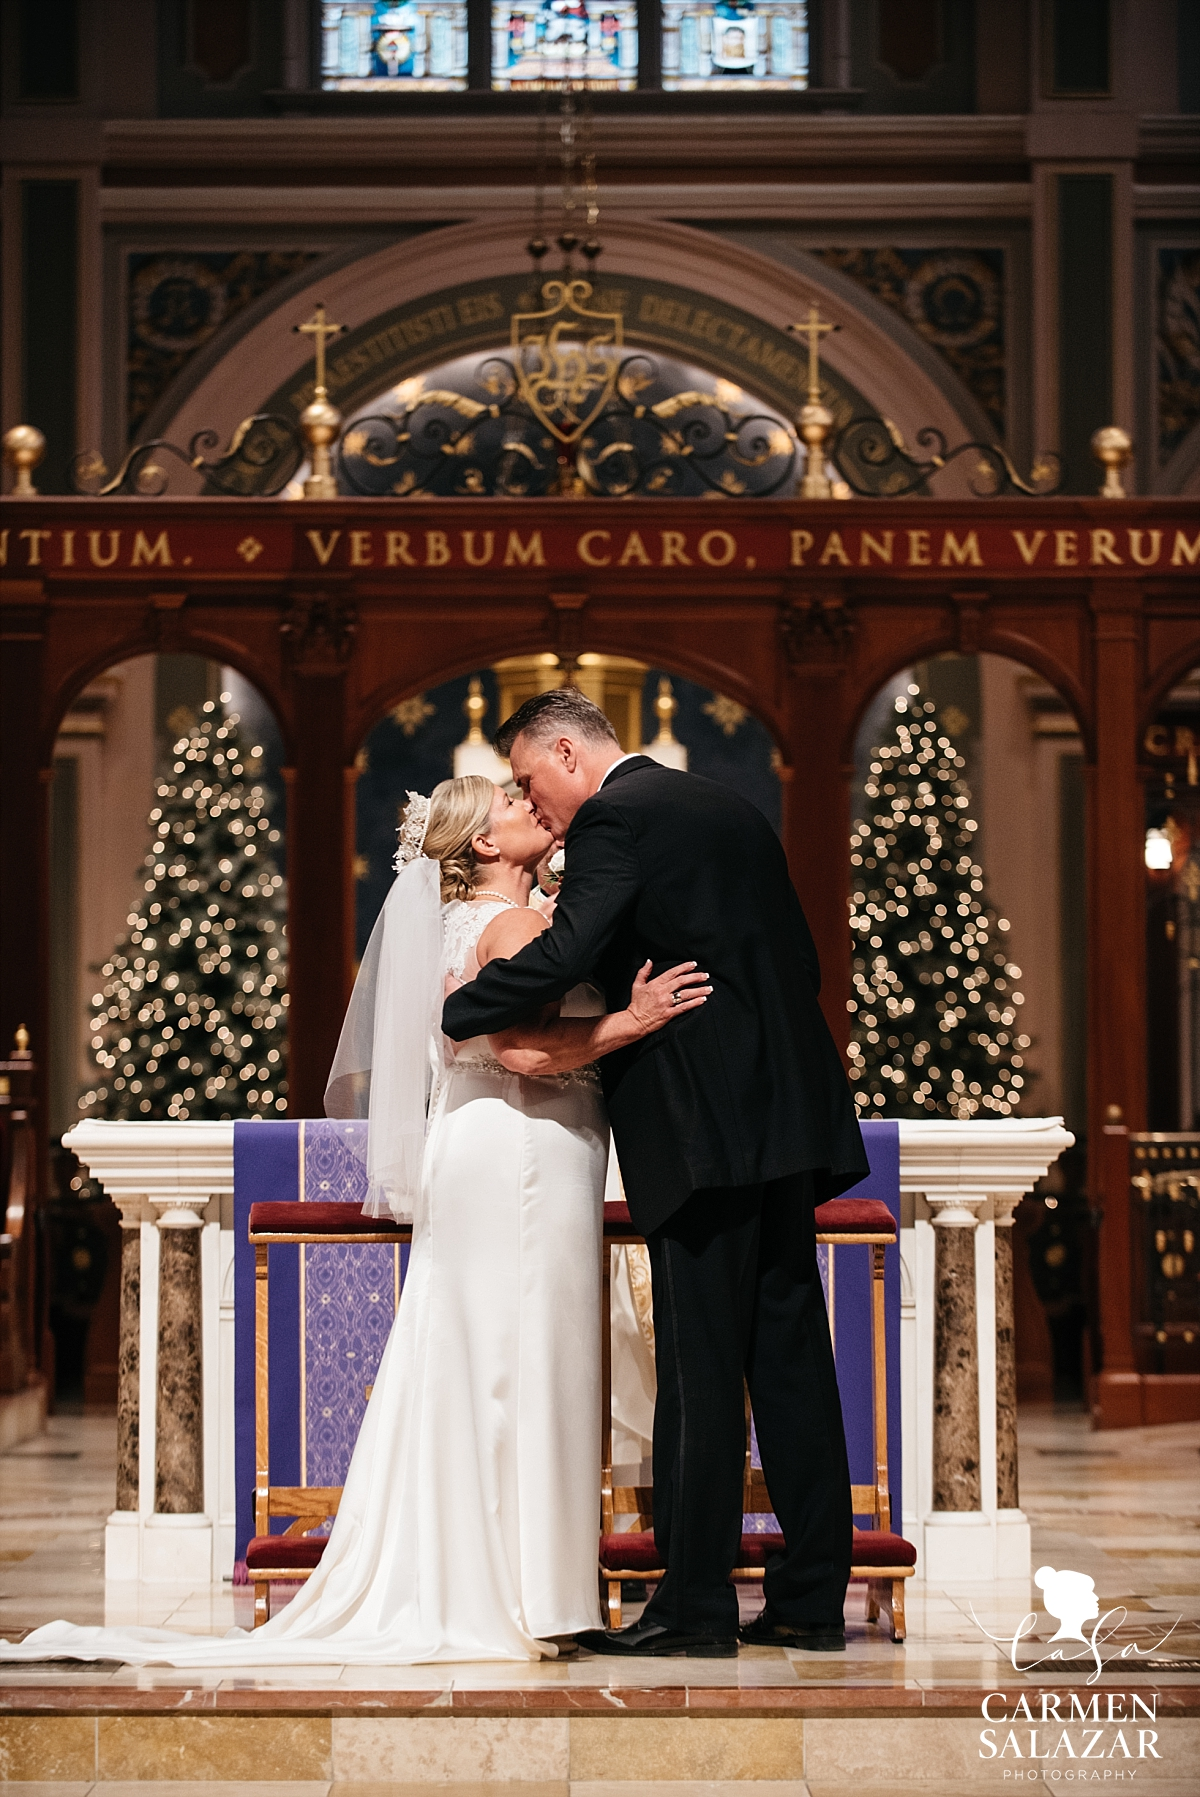 First kiss at Sacramento cathedral wedding - Carmen Salazar